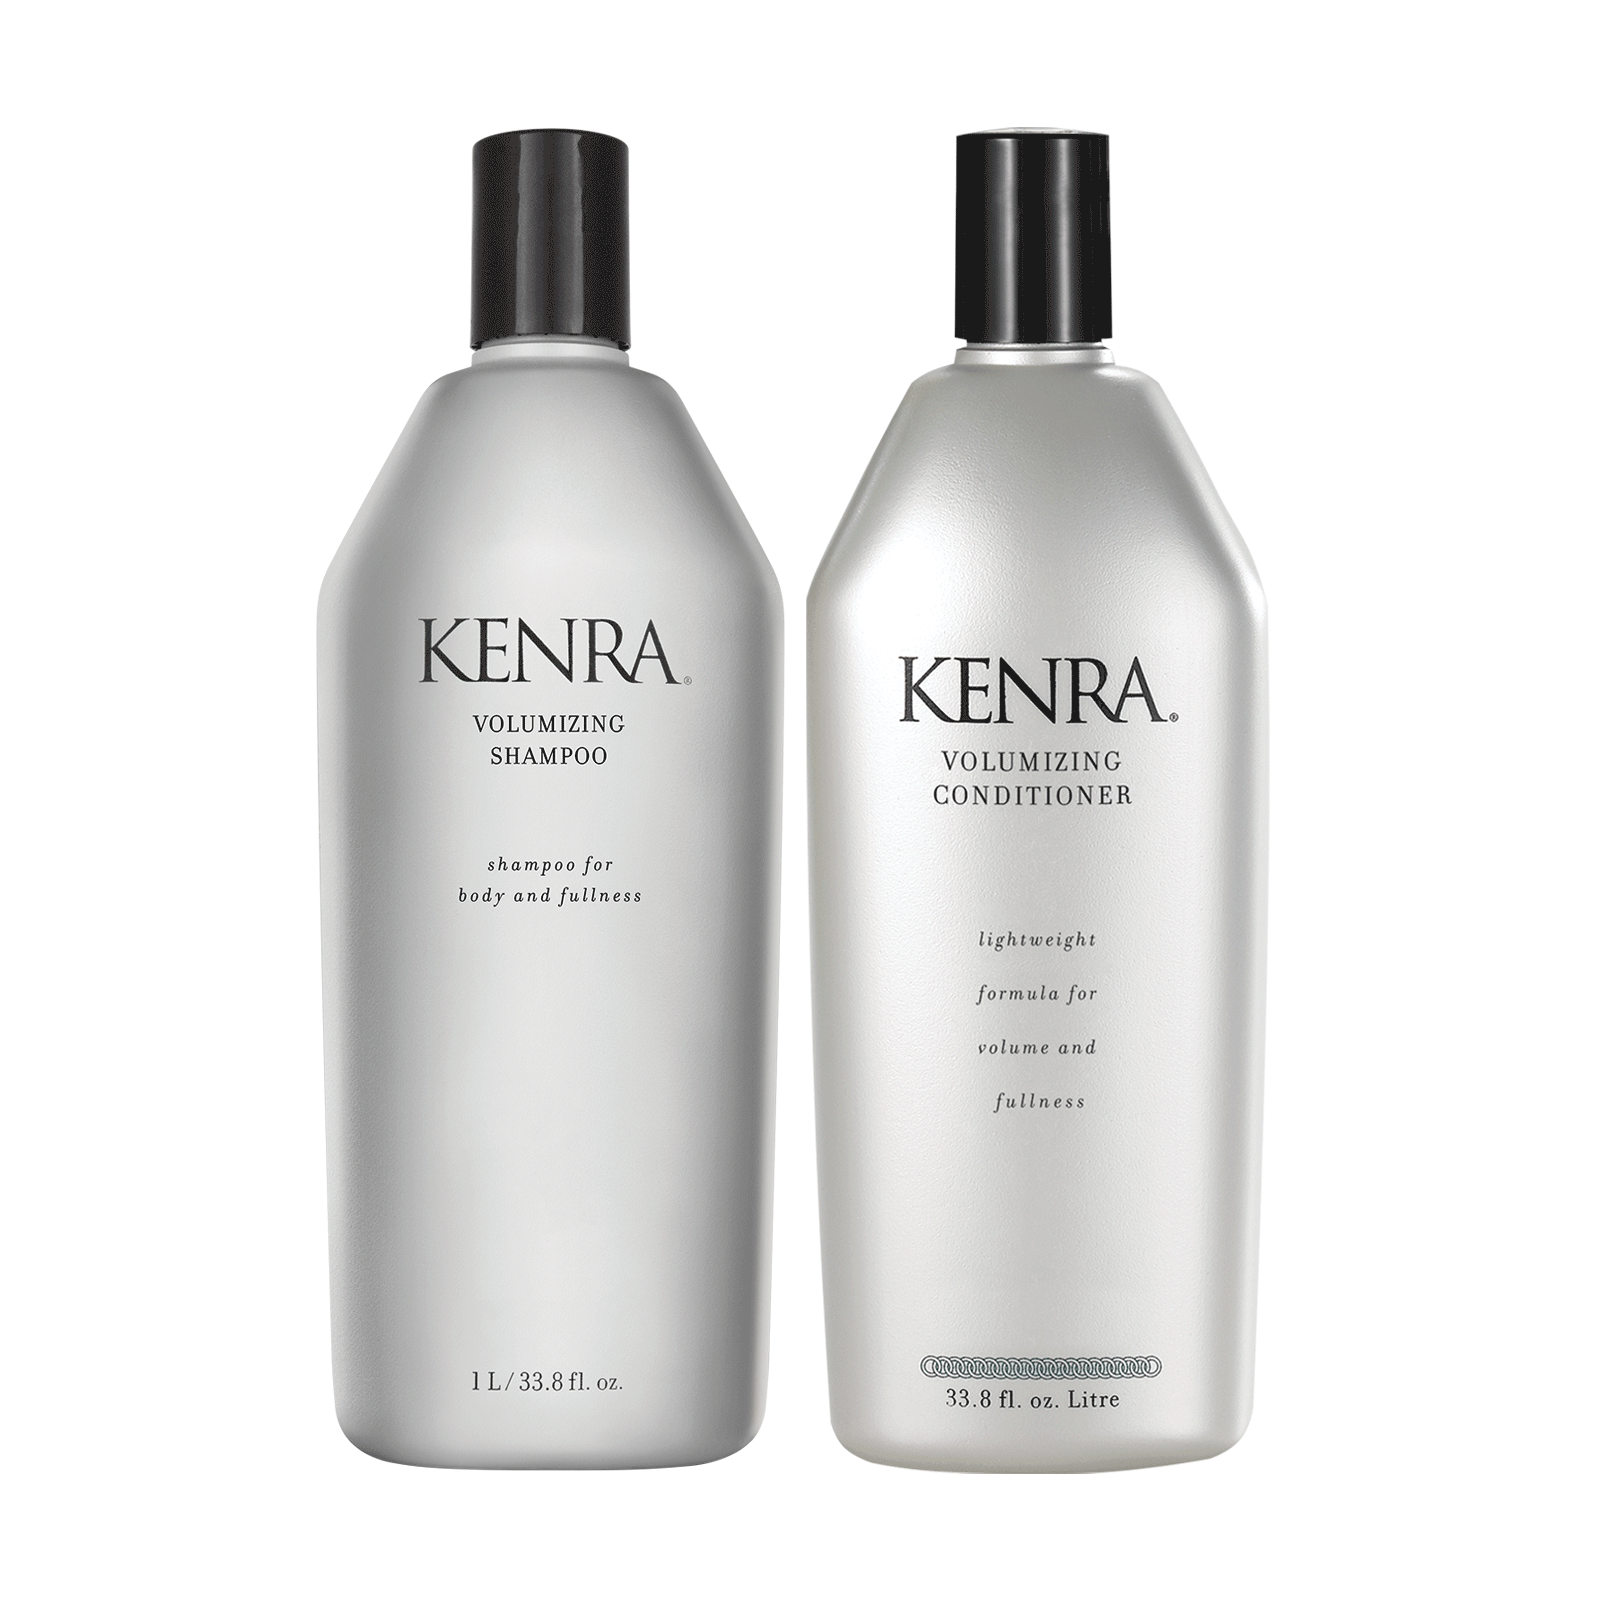 Volumizing Shampoo, Conditioner Liter Duo